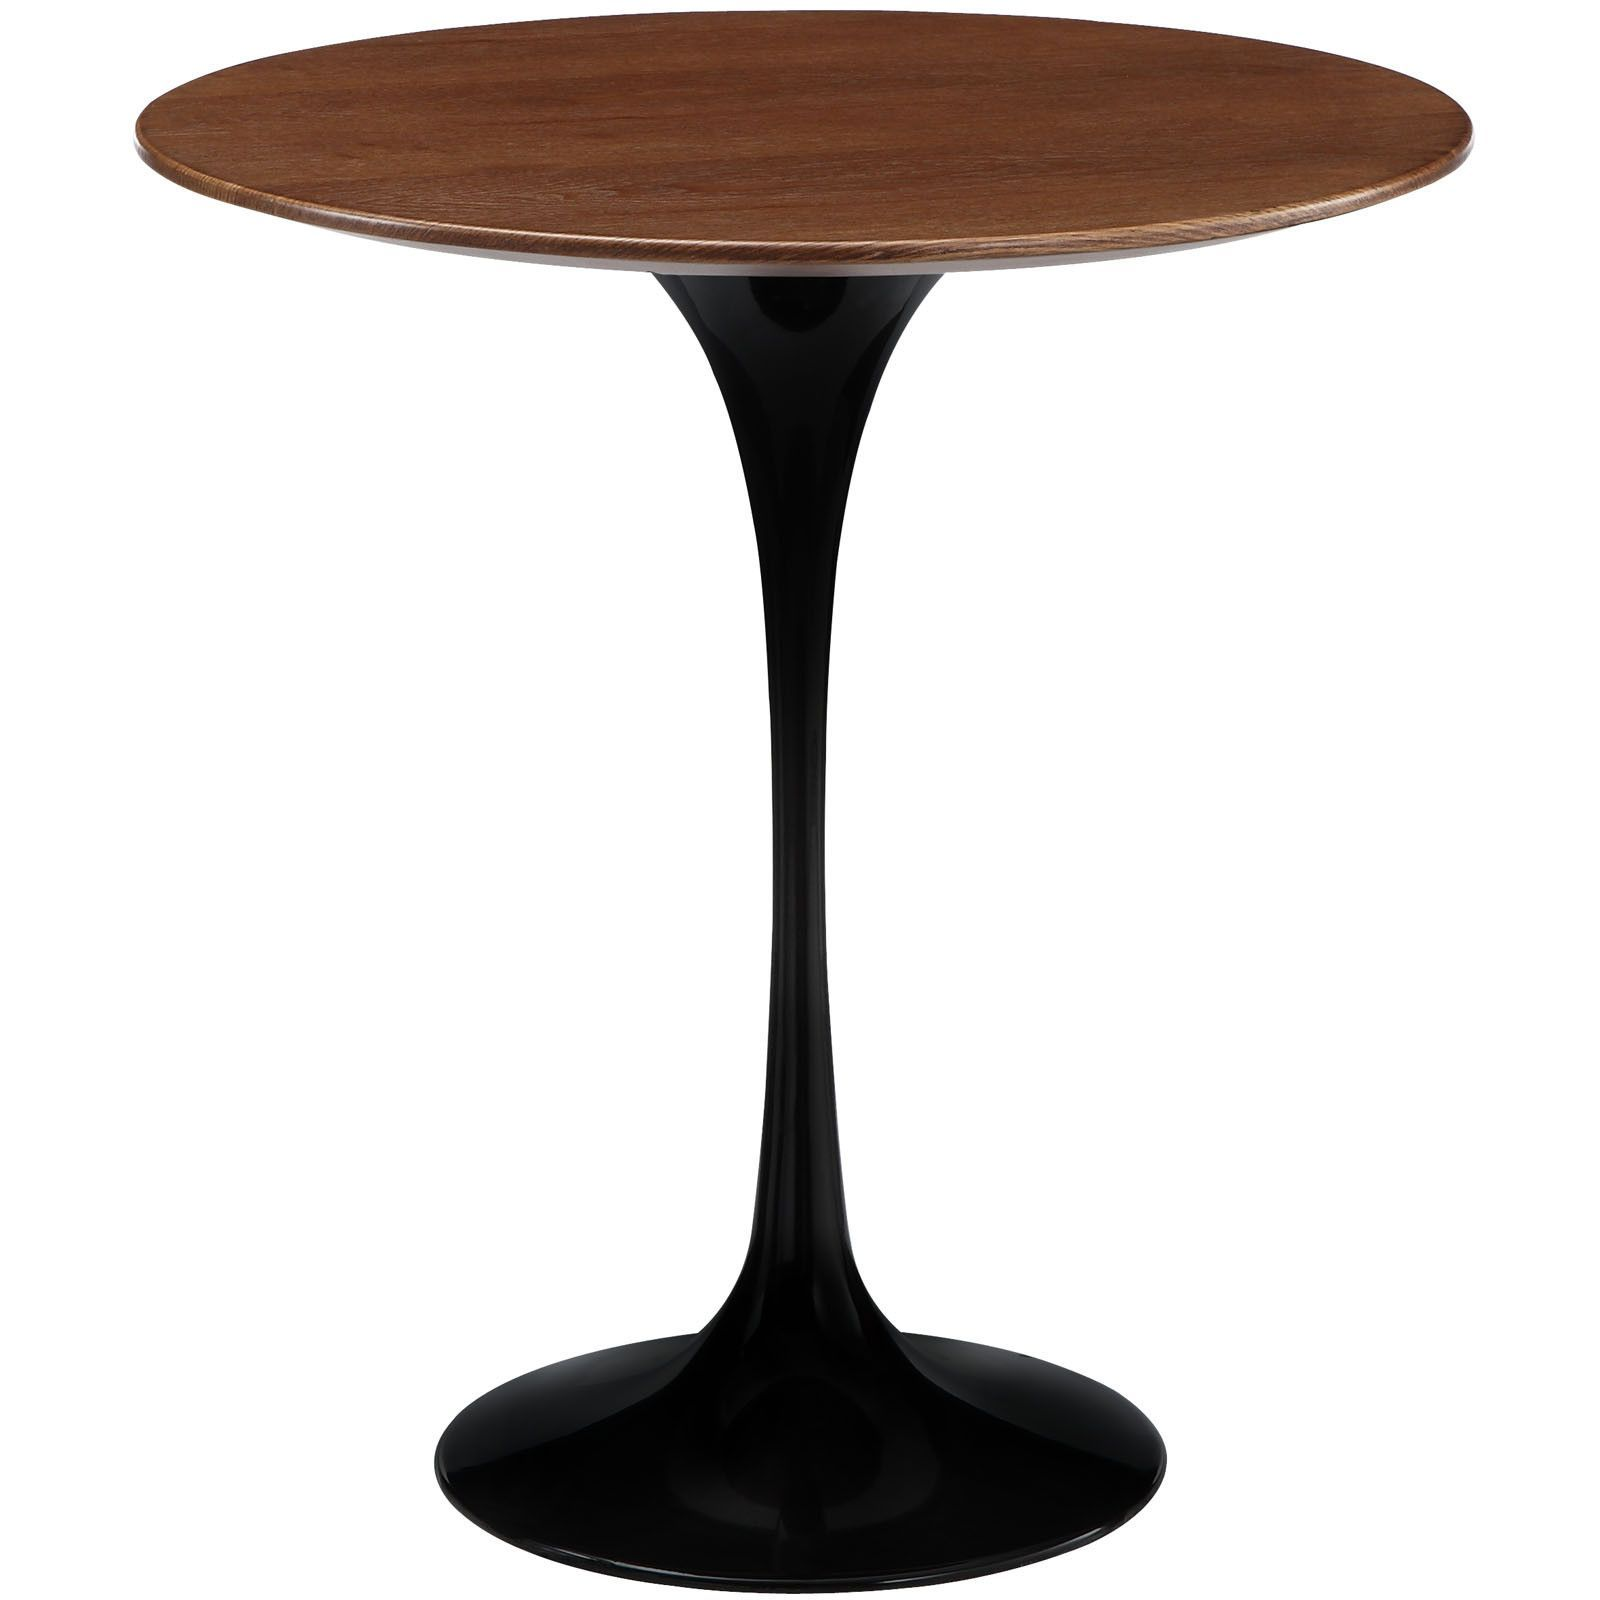 Eero Saarinen Style Tulip Side Table in Black with Wood Top 20